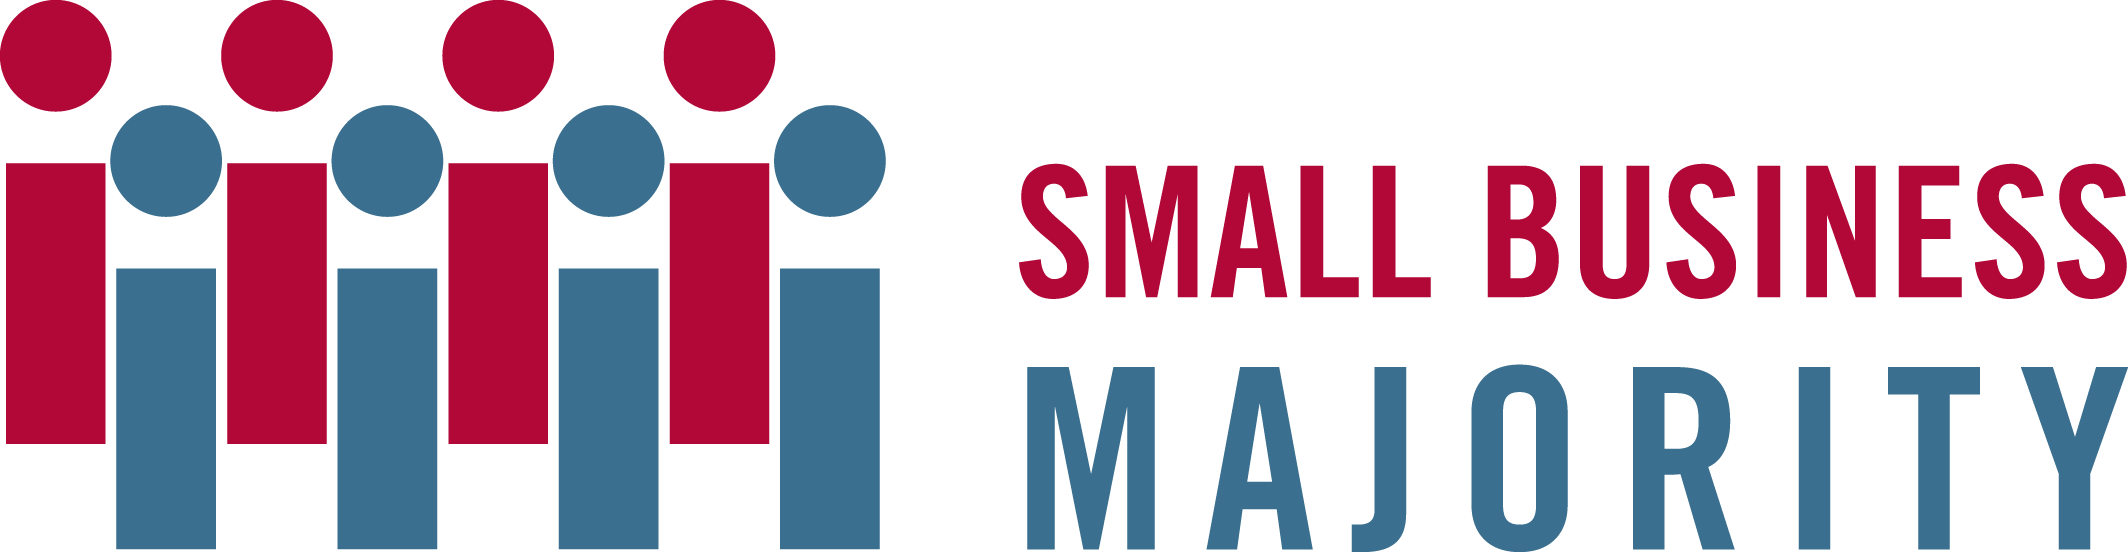 Small Business Majority/Venturize